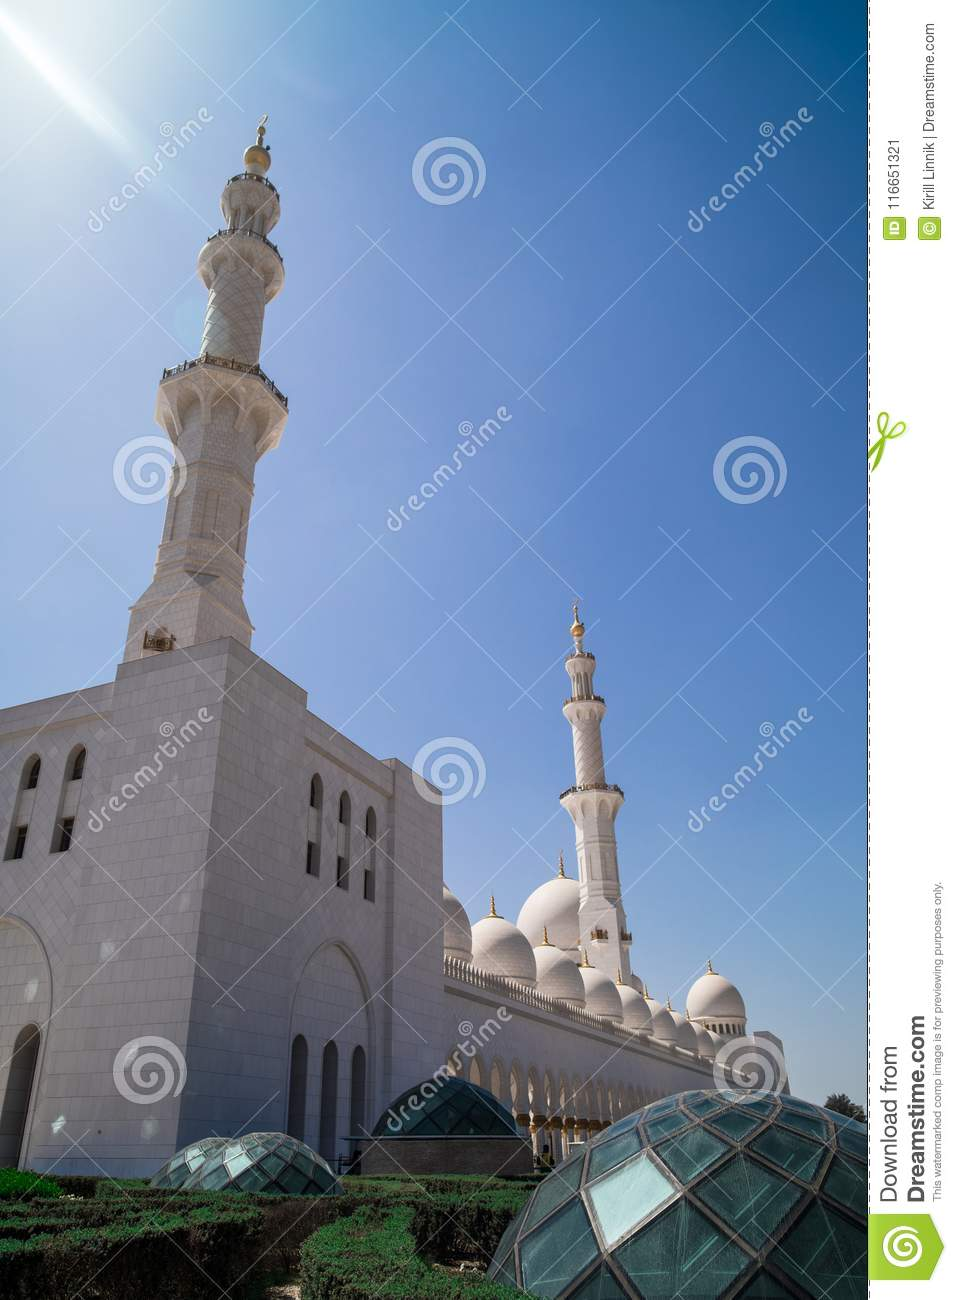 Download Abu Dhabi Sheikh Zayed Mosque Stock Image - Image of asia, blue: 116651321